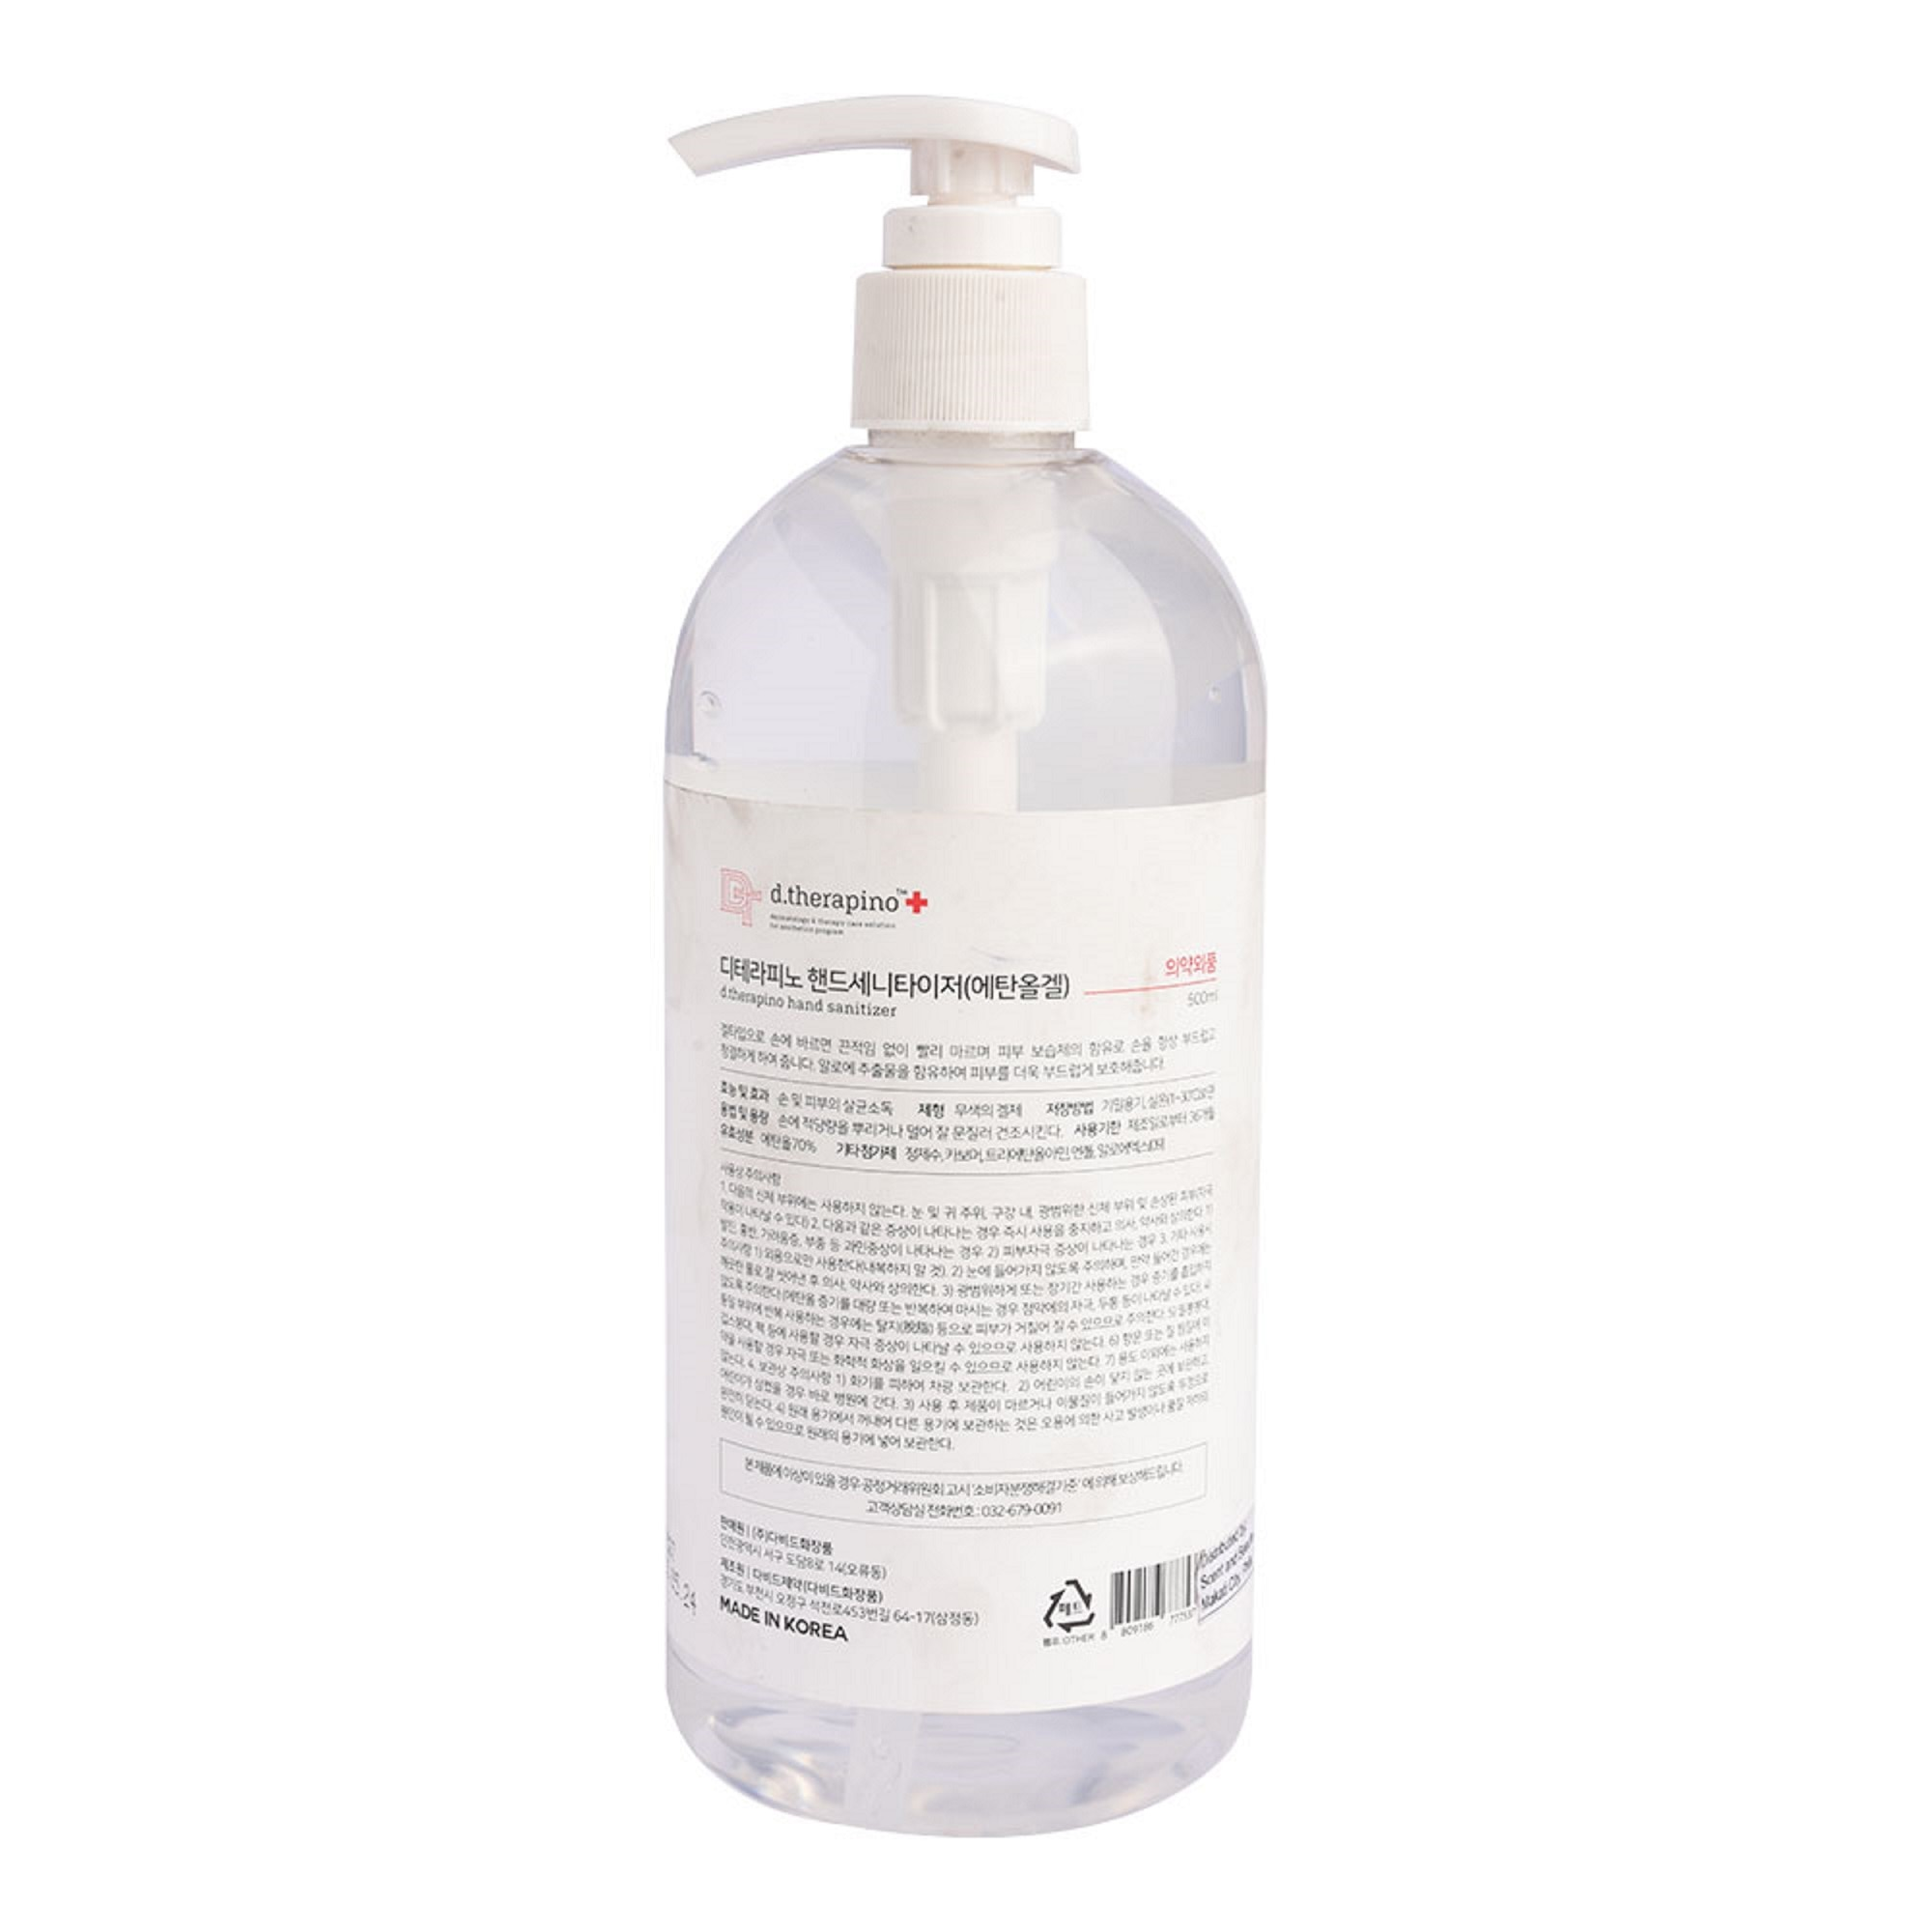 D THERAPINO70% Hand Sanitizer Gel 500ml,Hand Soap/Sanitizers